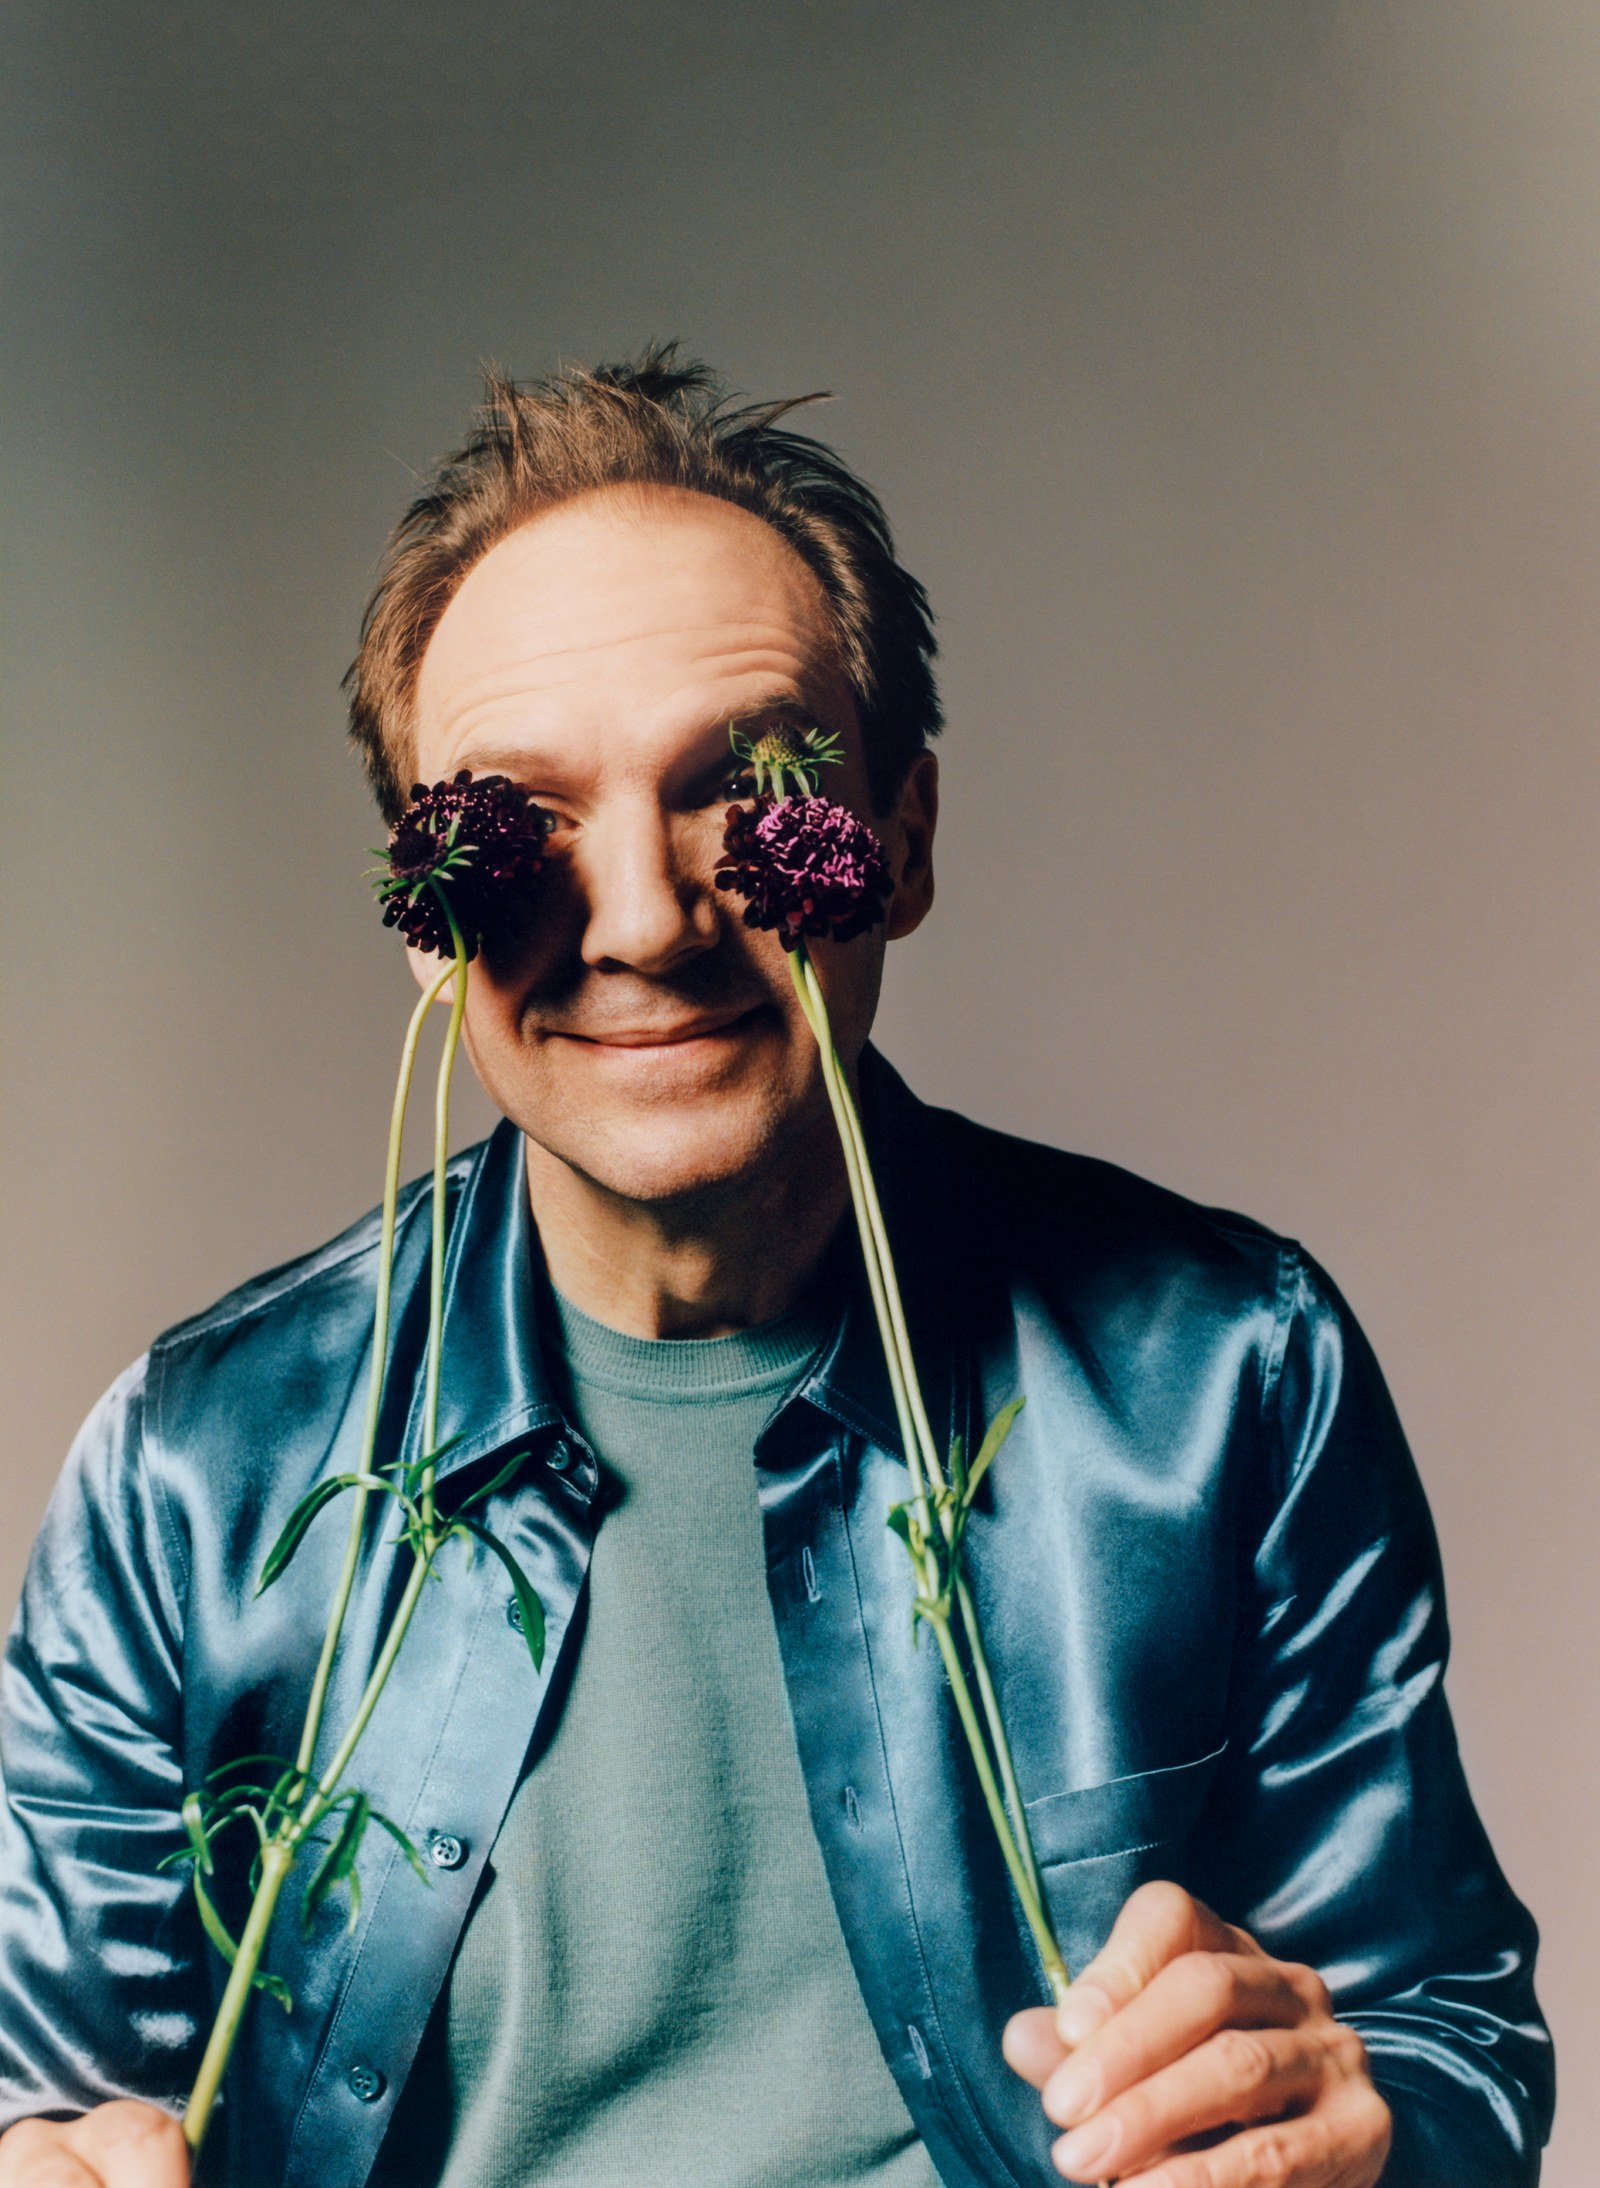 """Ralph Fiennes tries to see the rosy side of life in a photo shoot for """"GQ""""."""